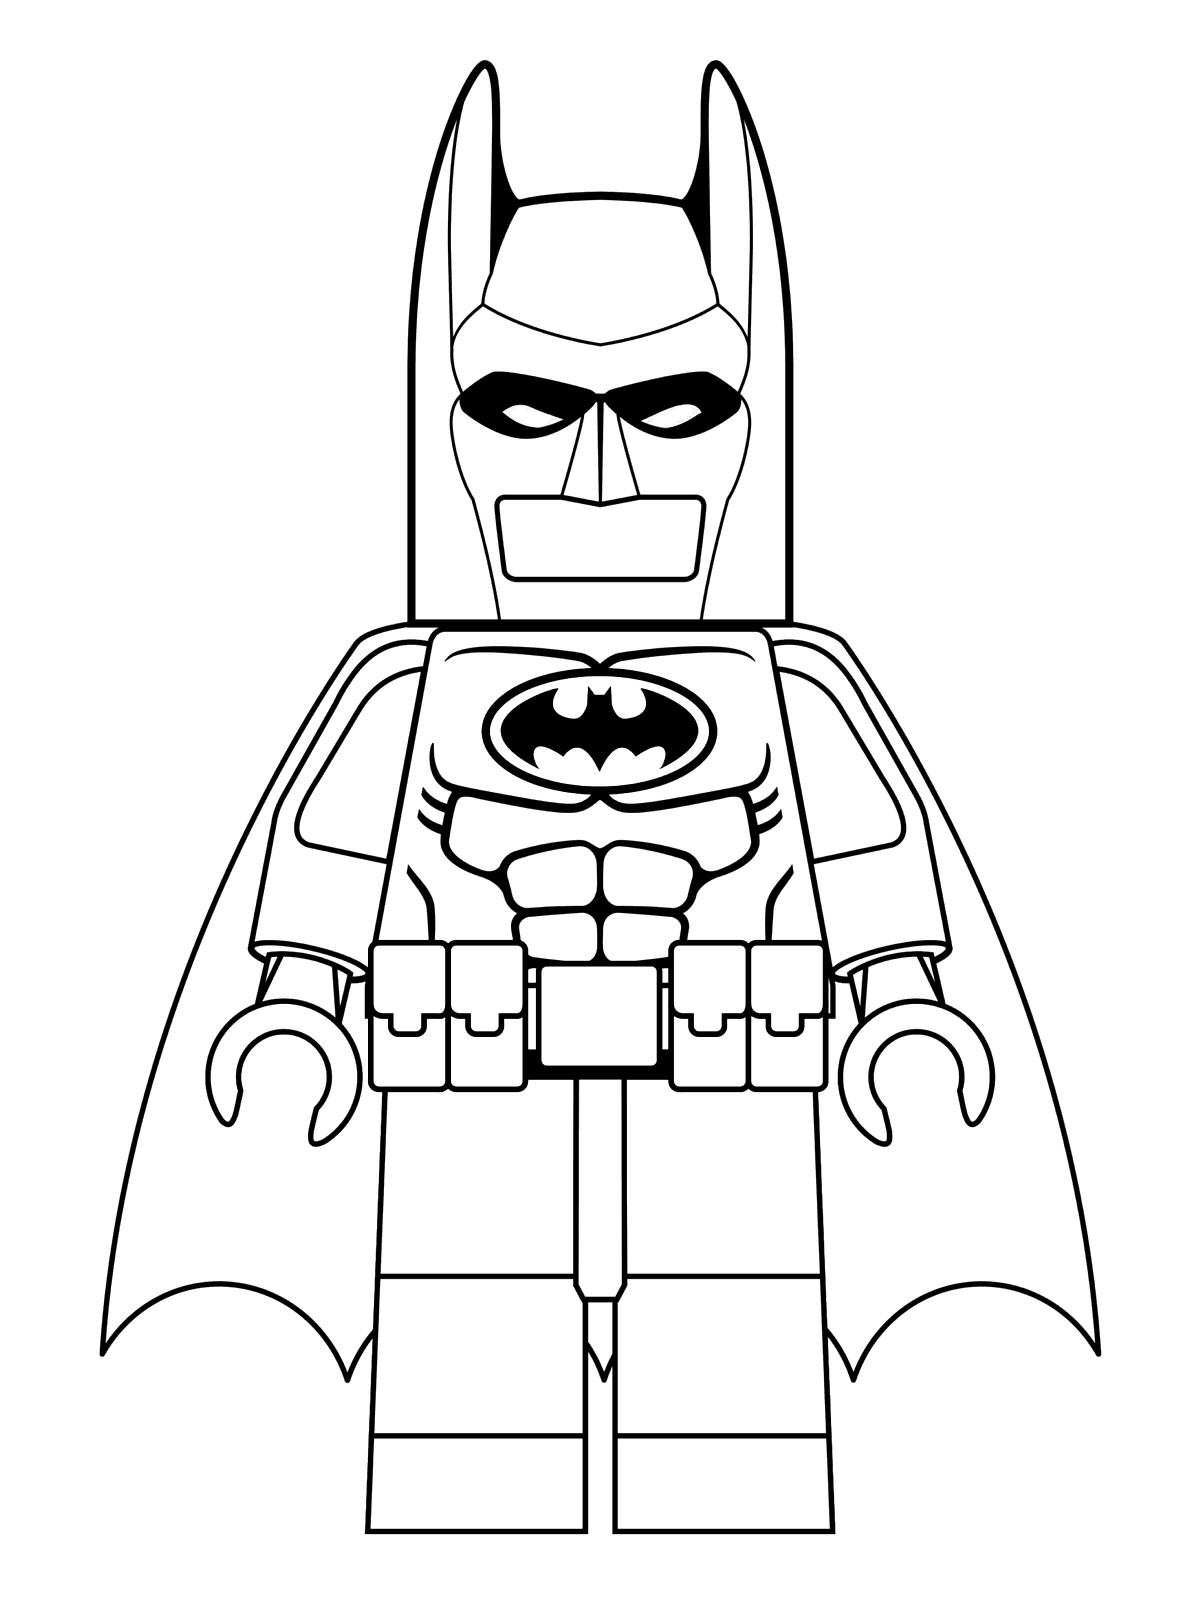 lego batman coloring sheets - Heart.impulsar.co